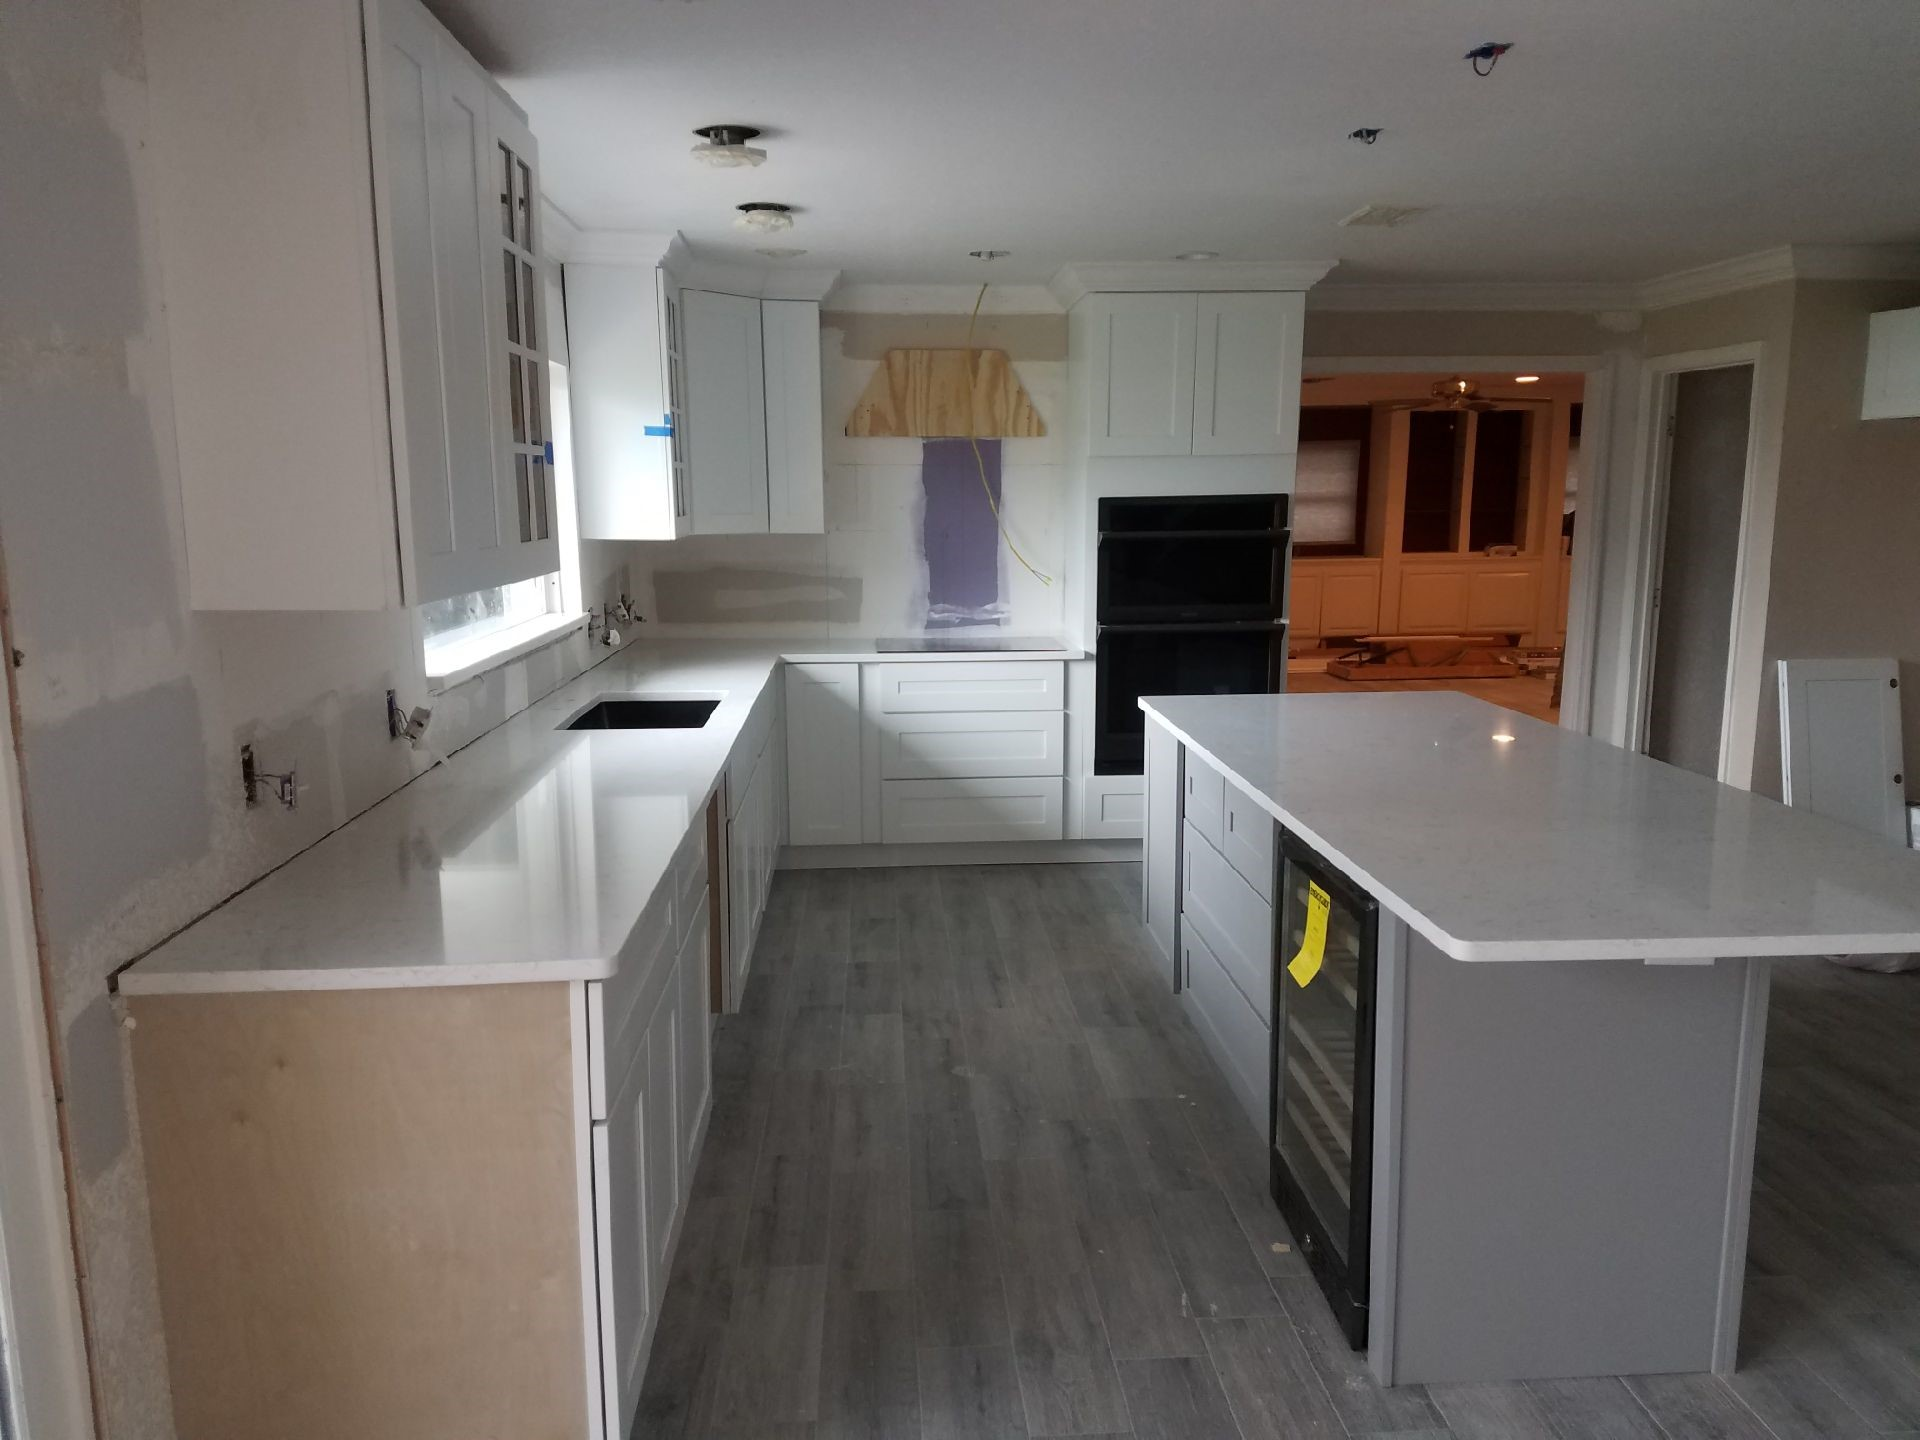 which for combos and unbelievable pict is ideas imgid countertop backsplash us better style stunning granite countertops or best marble combinations quartz tampa trend design supplier